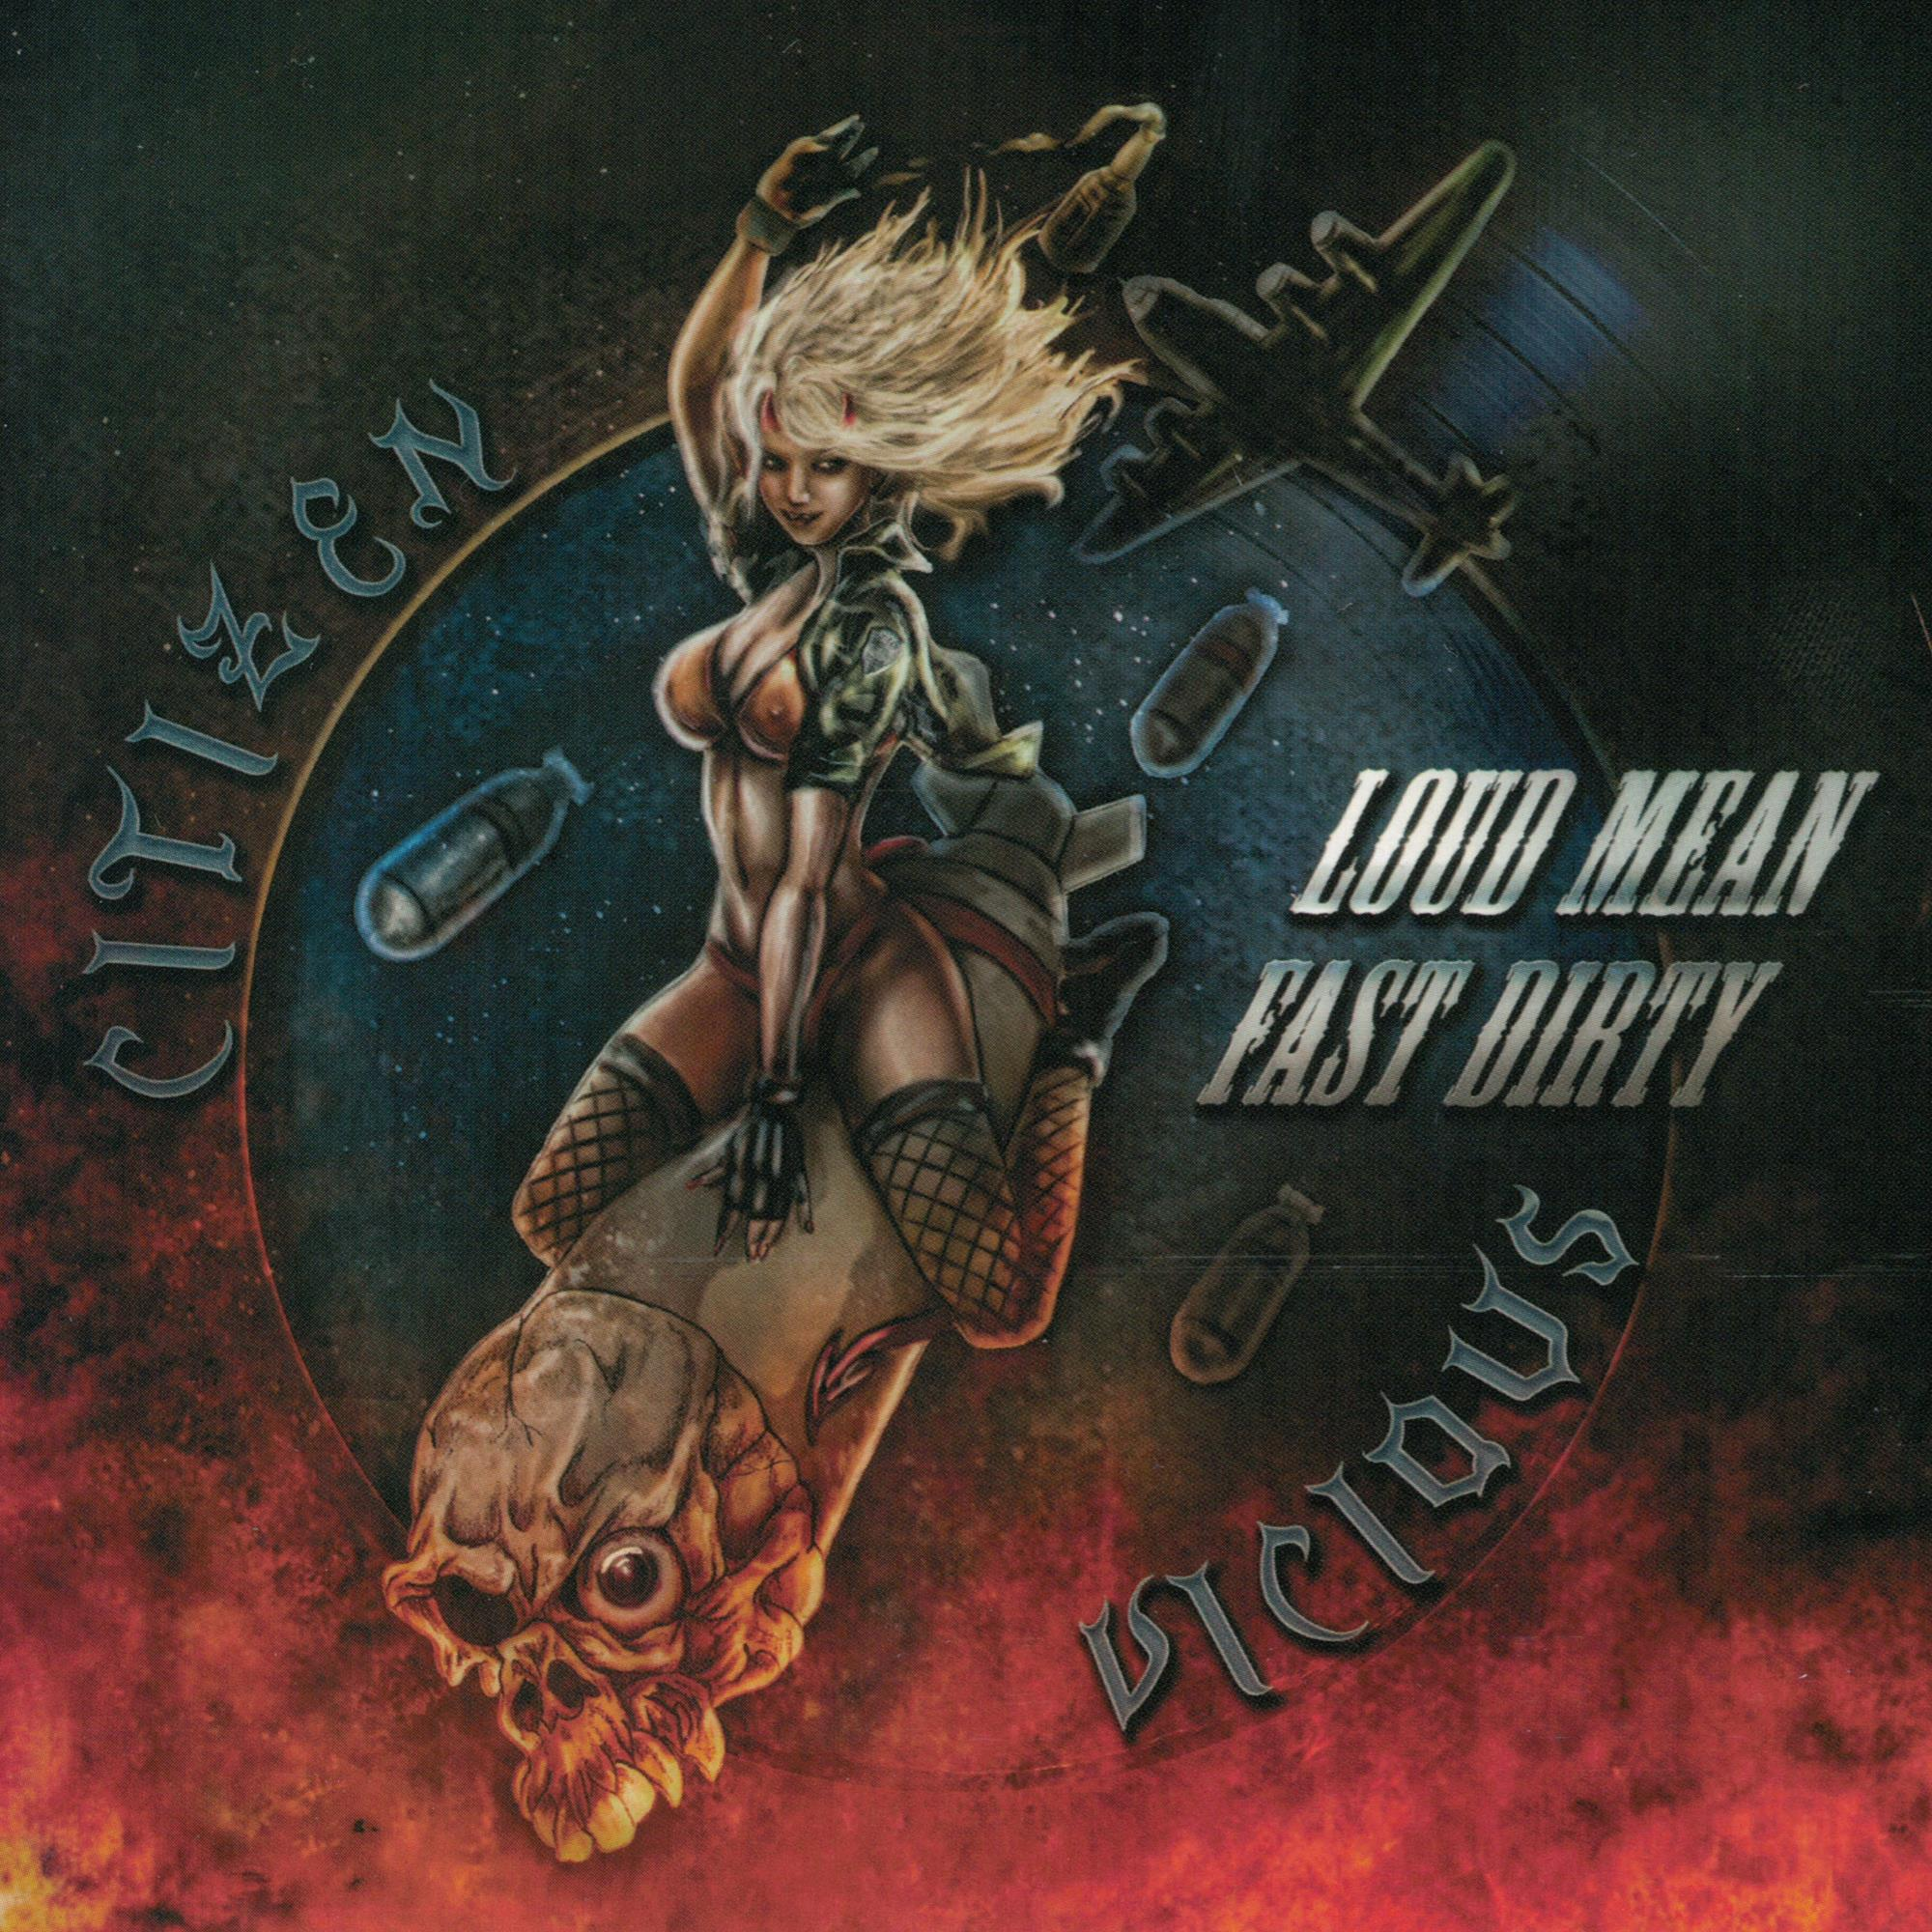 Loud Mean Fast Dirty CD